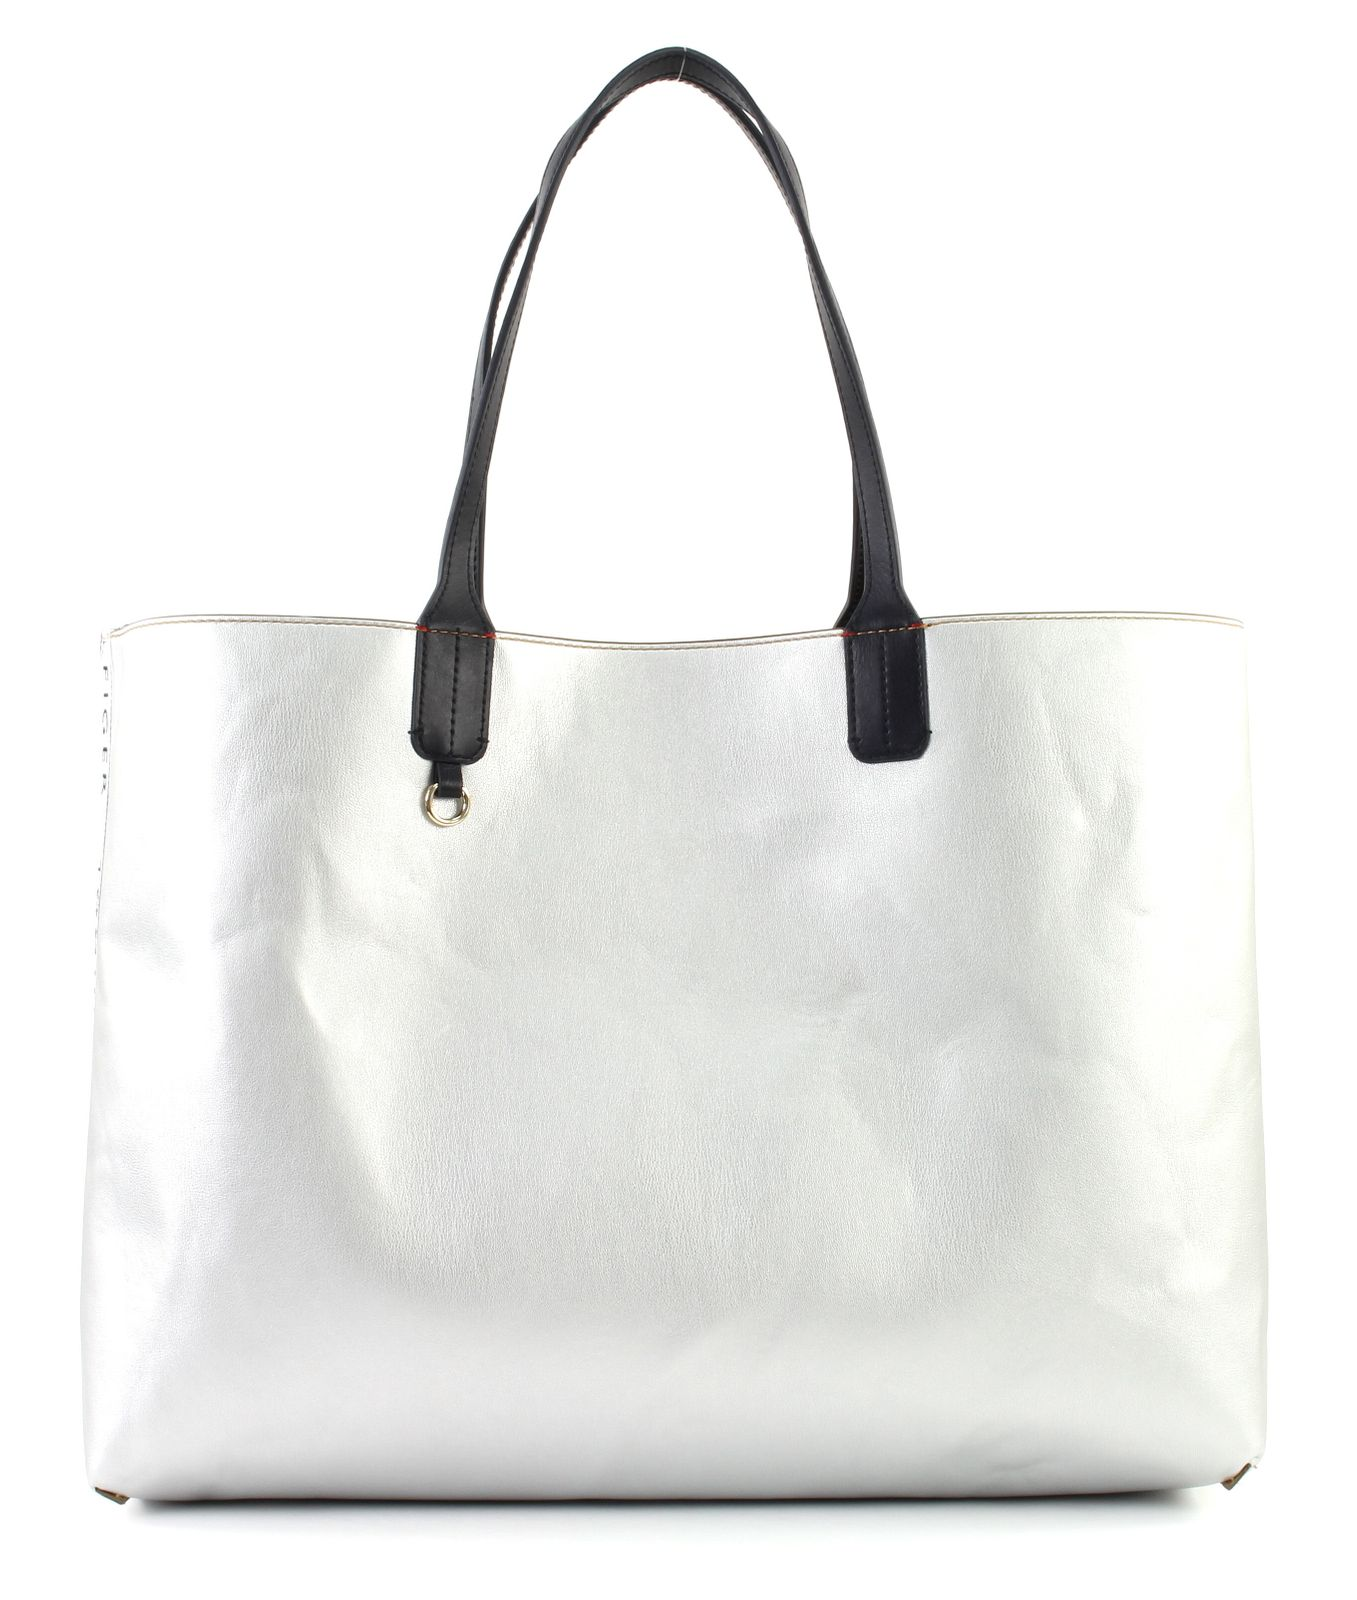 5d662777 ... CloseTOMMY HILFIGER Iconic Tommy Tote Mirror Metallic / 129,90 €*Tap To  CloseOnly possible if you pay by Paypal, Amazon Payments, Credit Card, ...